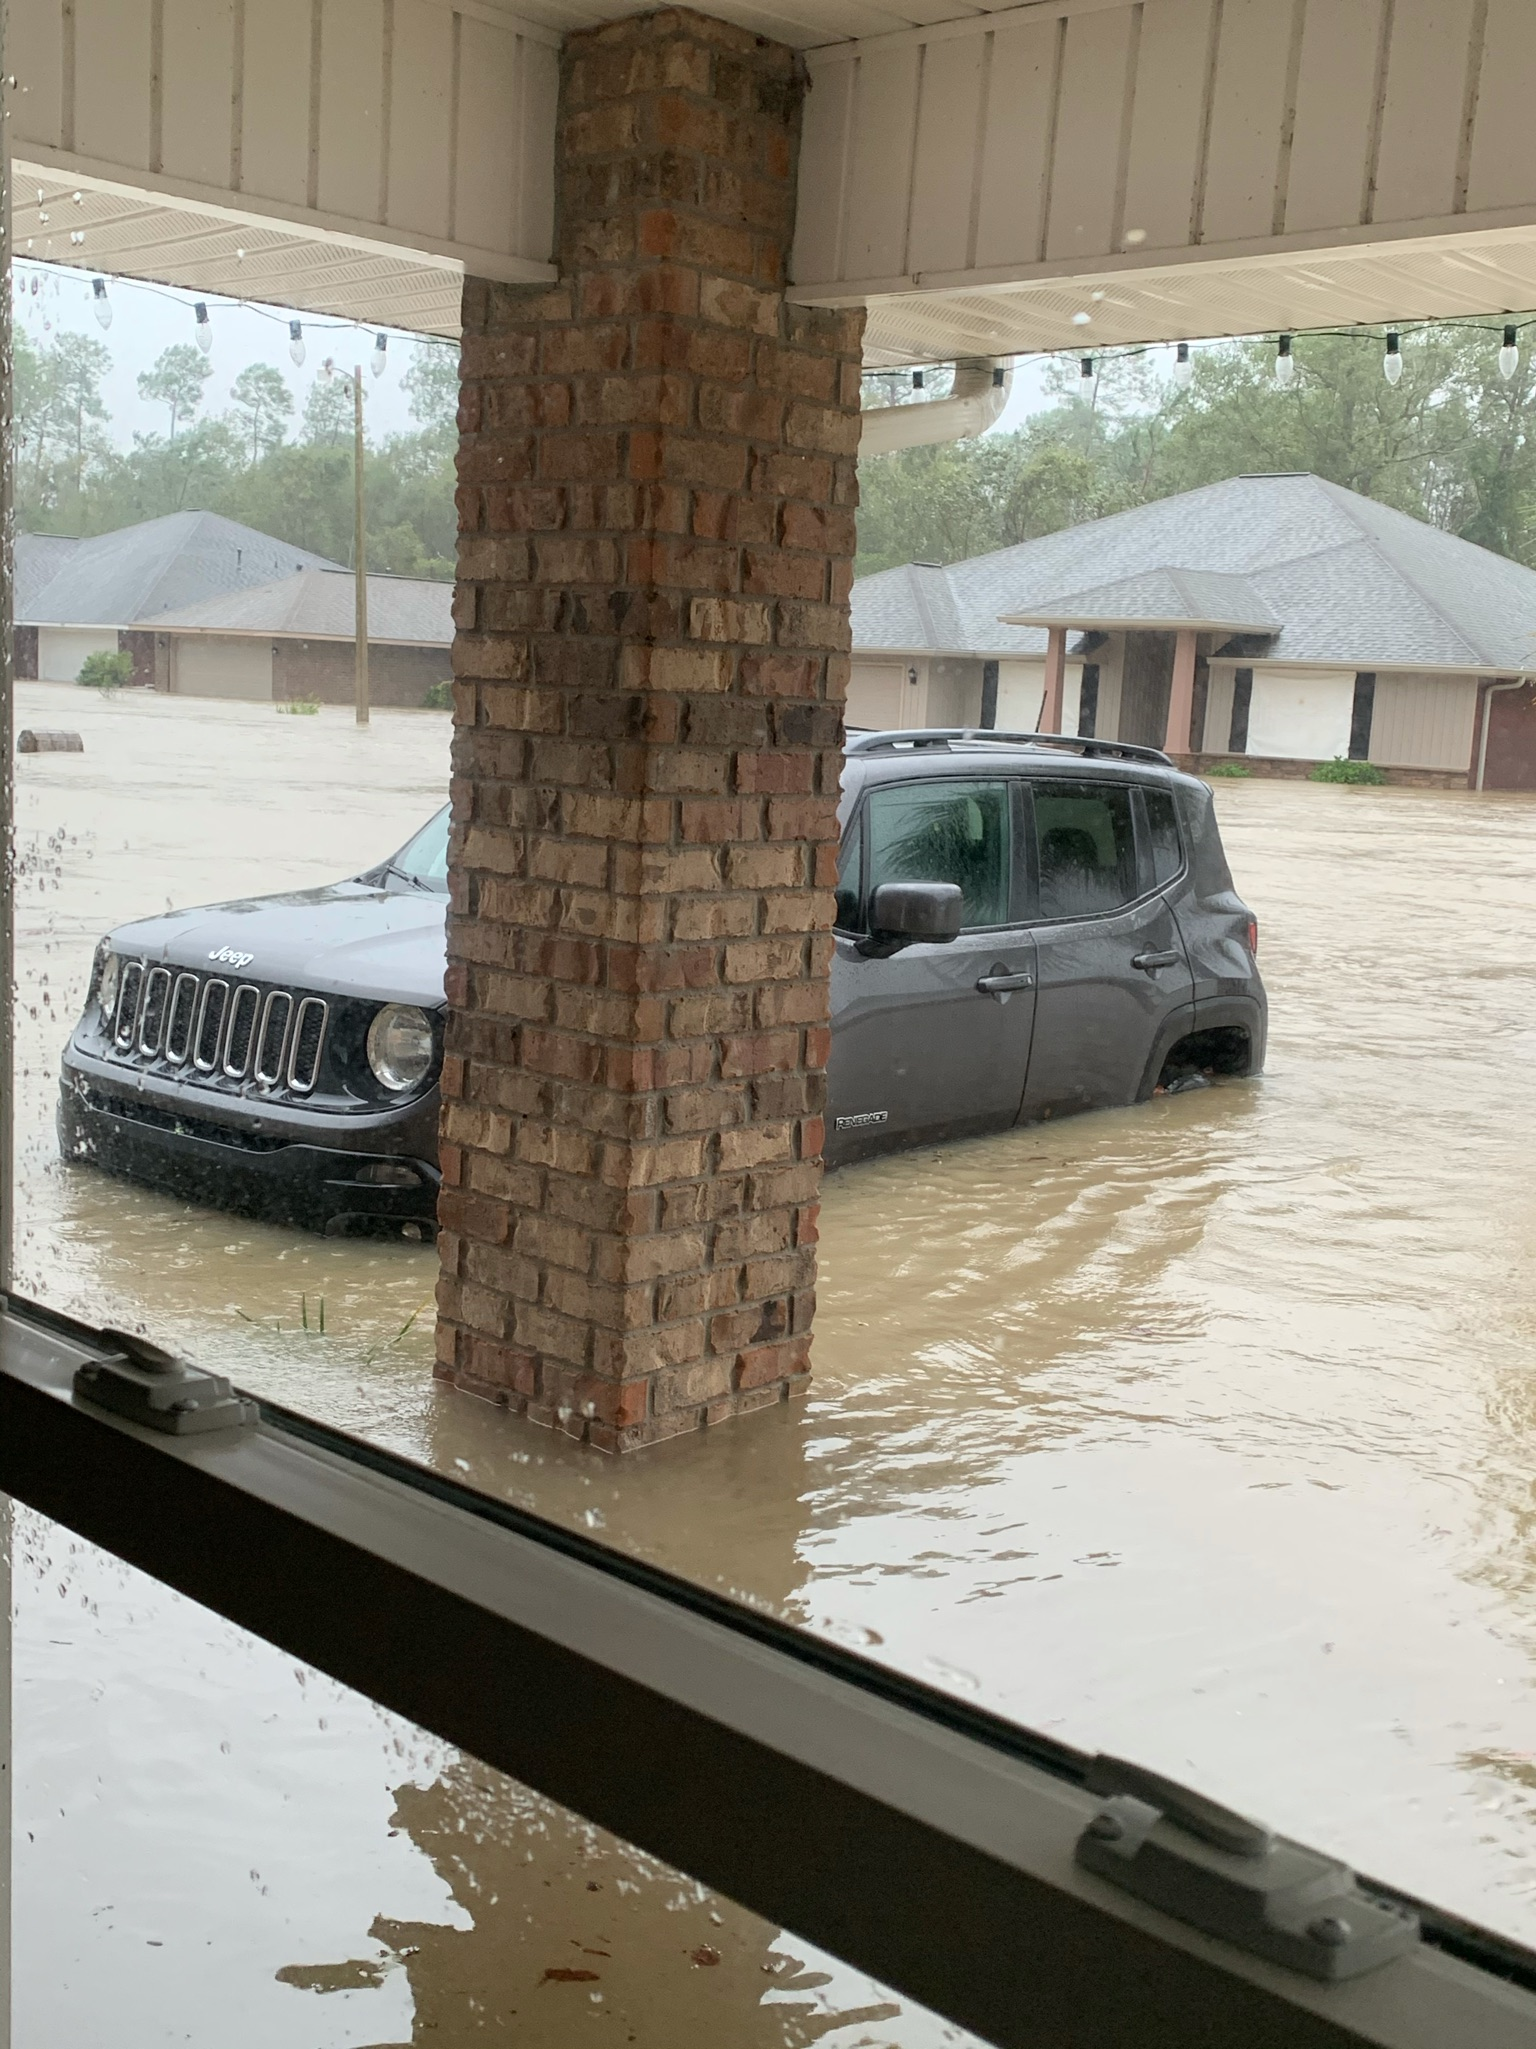 Bristol Park Area Residents Ask for Flood Protection, Not Home Buyouts